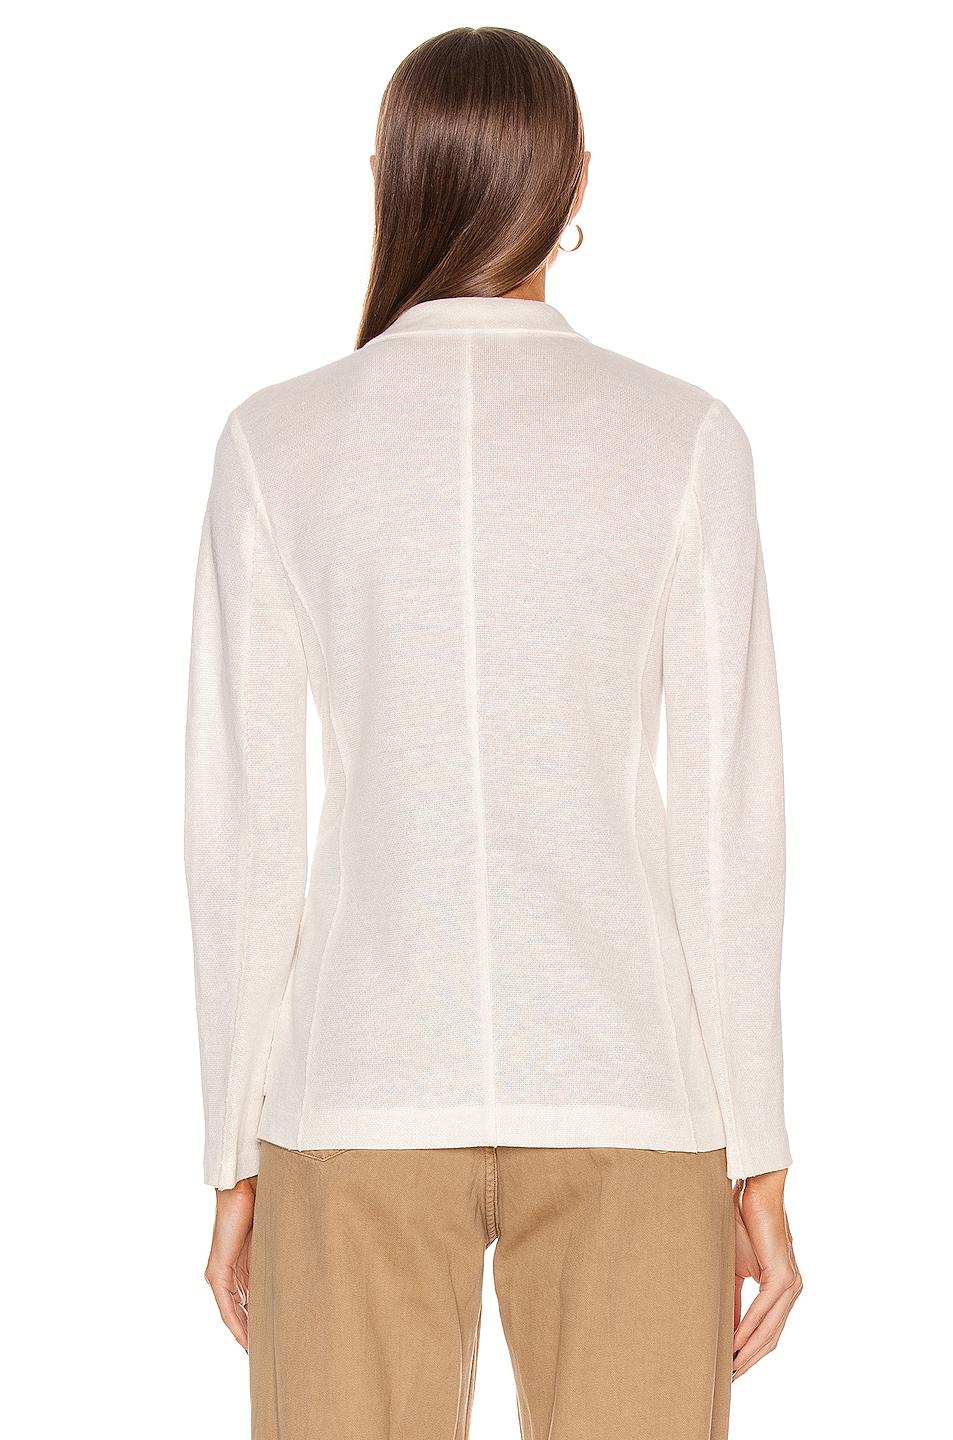 Image 4 of Harris Wharf London Peal Lapel Blazer Jacket in Off White